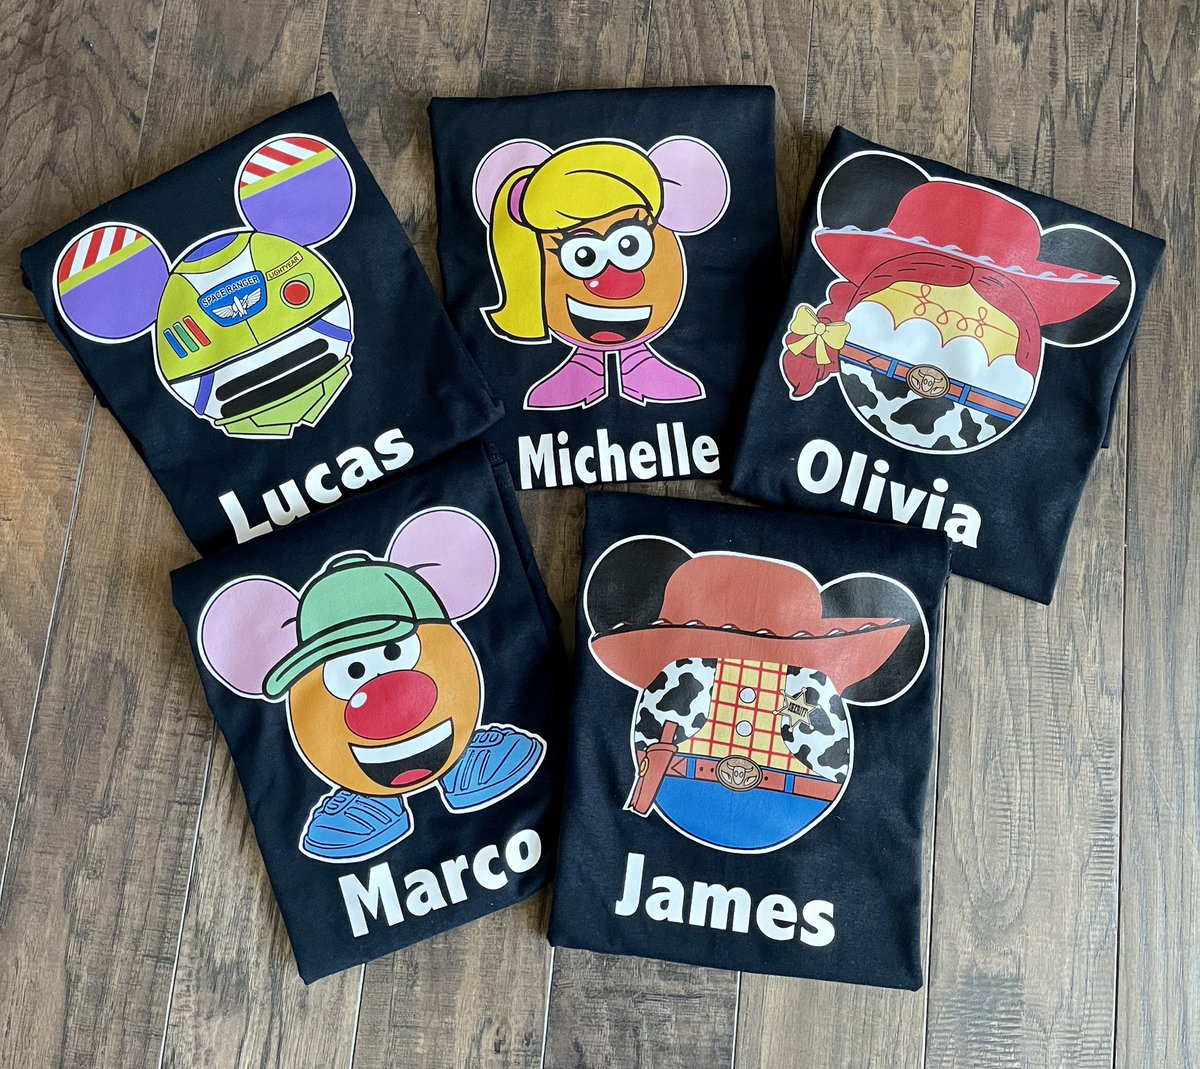 😲 $$$ Jaw-dropping deals for you! 😲 NOW ON SALE!!!  FREE SHIPPING ON EVERYTHING!!! #Hawaii #DisneyPlus #disney #MickeyMouse #mickeytshirt #MINNIE #Disneyland #police #officer #TuesdayThoughts #Aloha #wdw  #disneycruise  #LEGO